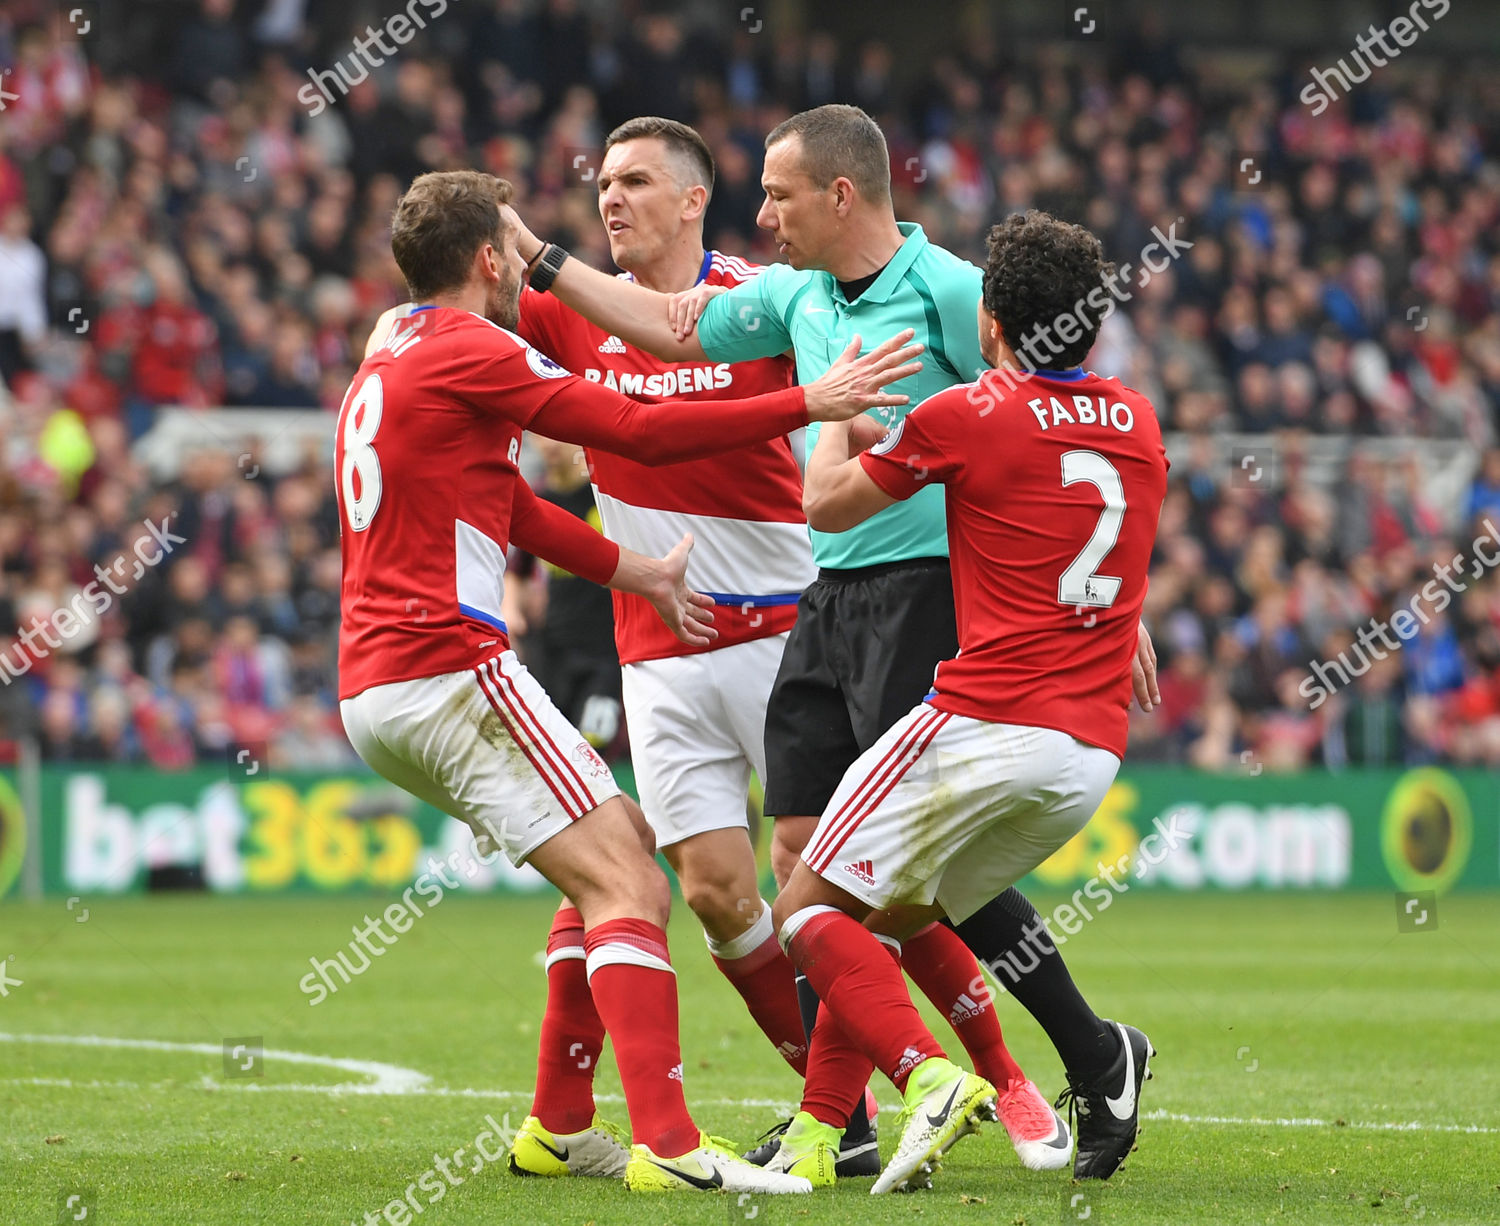 Middlesbrough players surround referee Kevin Friend after